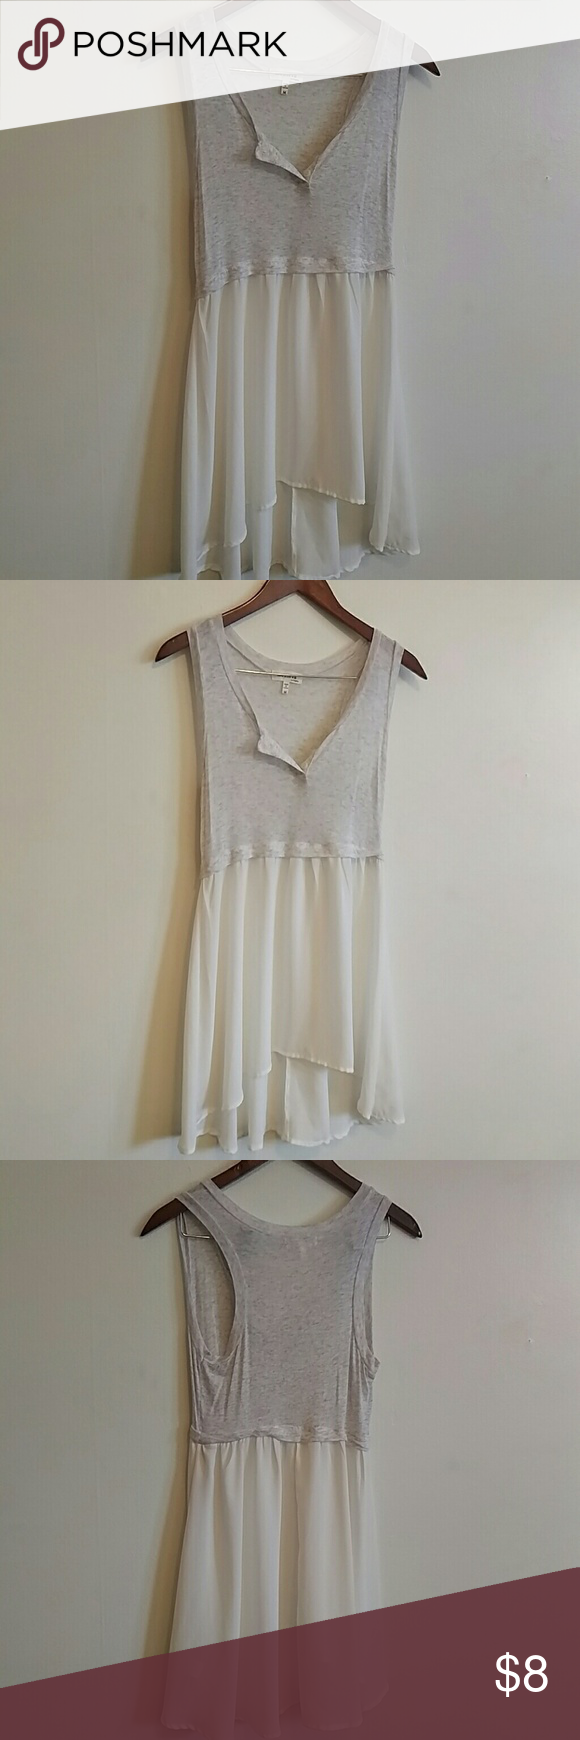 Flowing sheer tank top Grey sheer top with a white flowing layer on the bottom. Very soft, forming fit with a flowing white layer. Monteau Tops Tank Tops